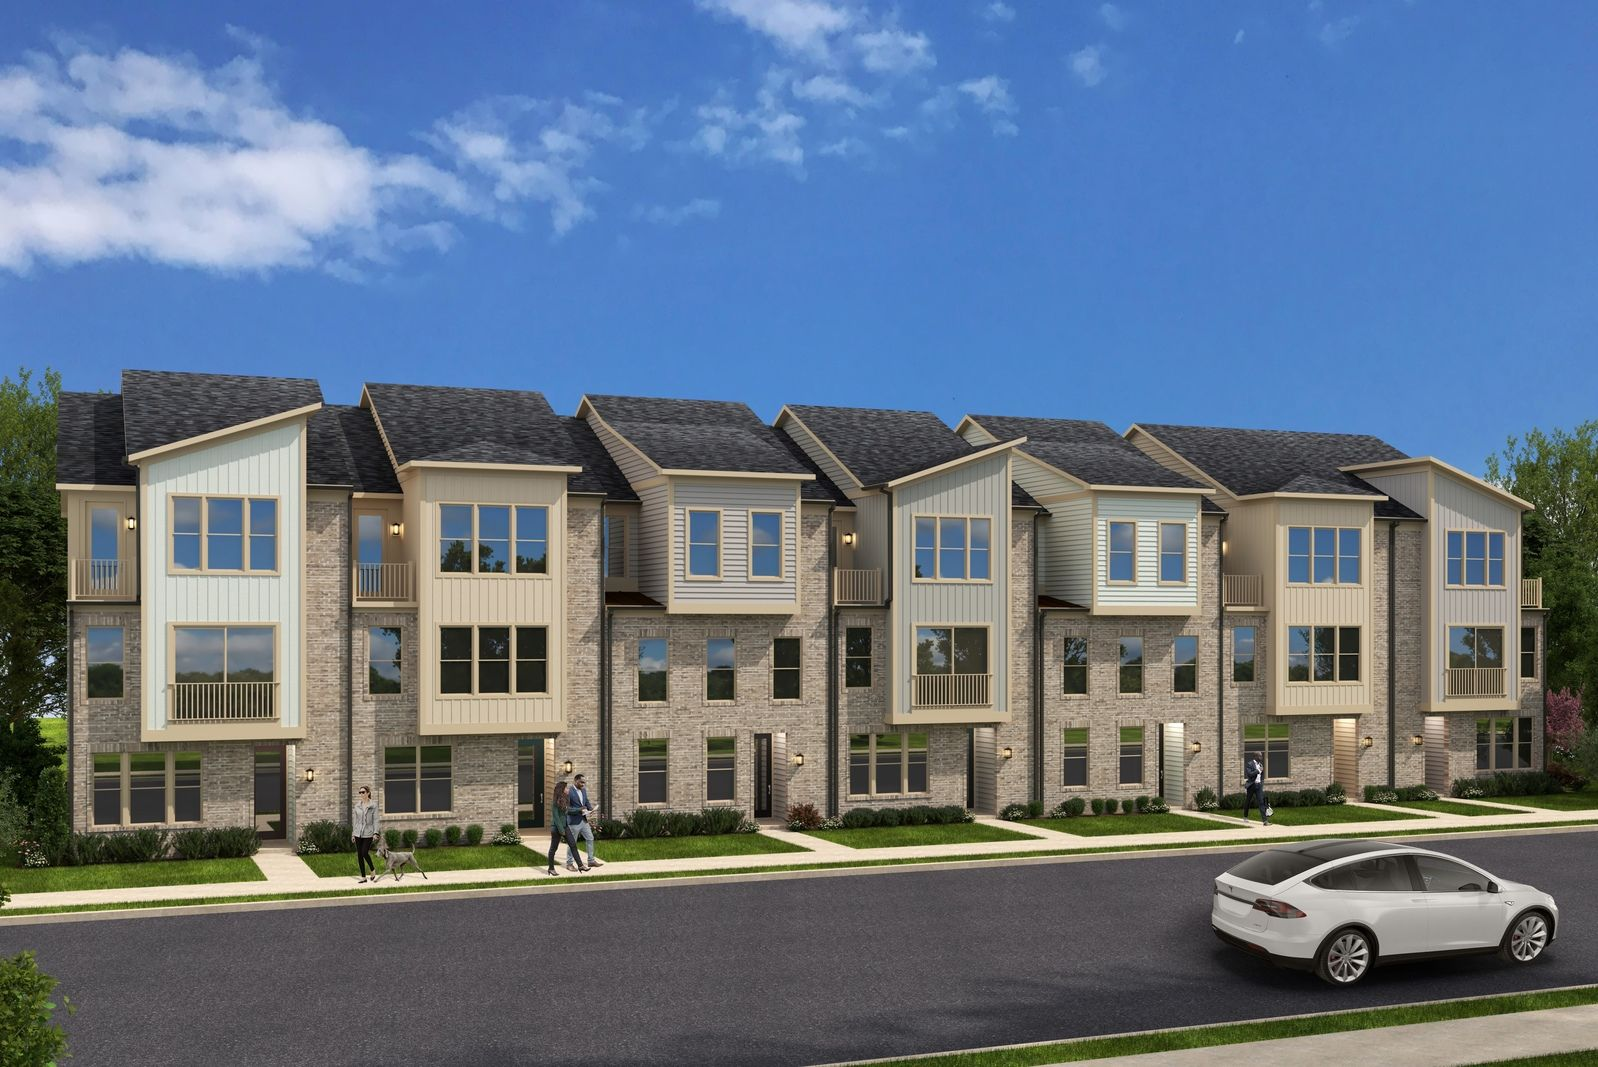 Sophisticated Townhomes in Sought-After Laurel:Introducing a private enclave of luxurious new townhomes in a pristine Laurel location, surrounded by trees and onsite amenities.Homes are now selling.Schedule a visit today!